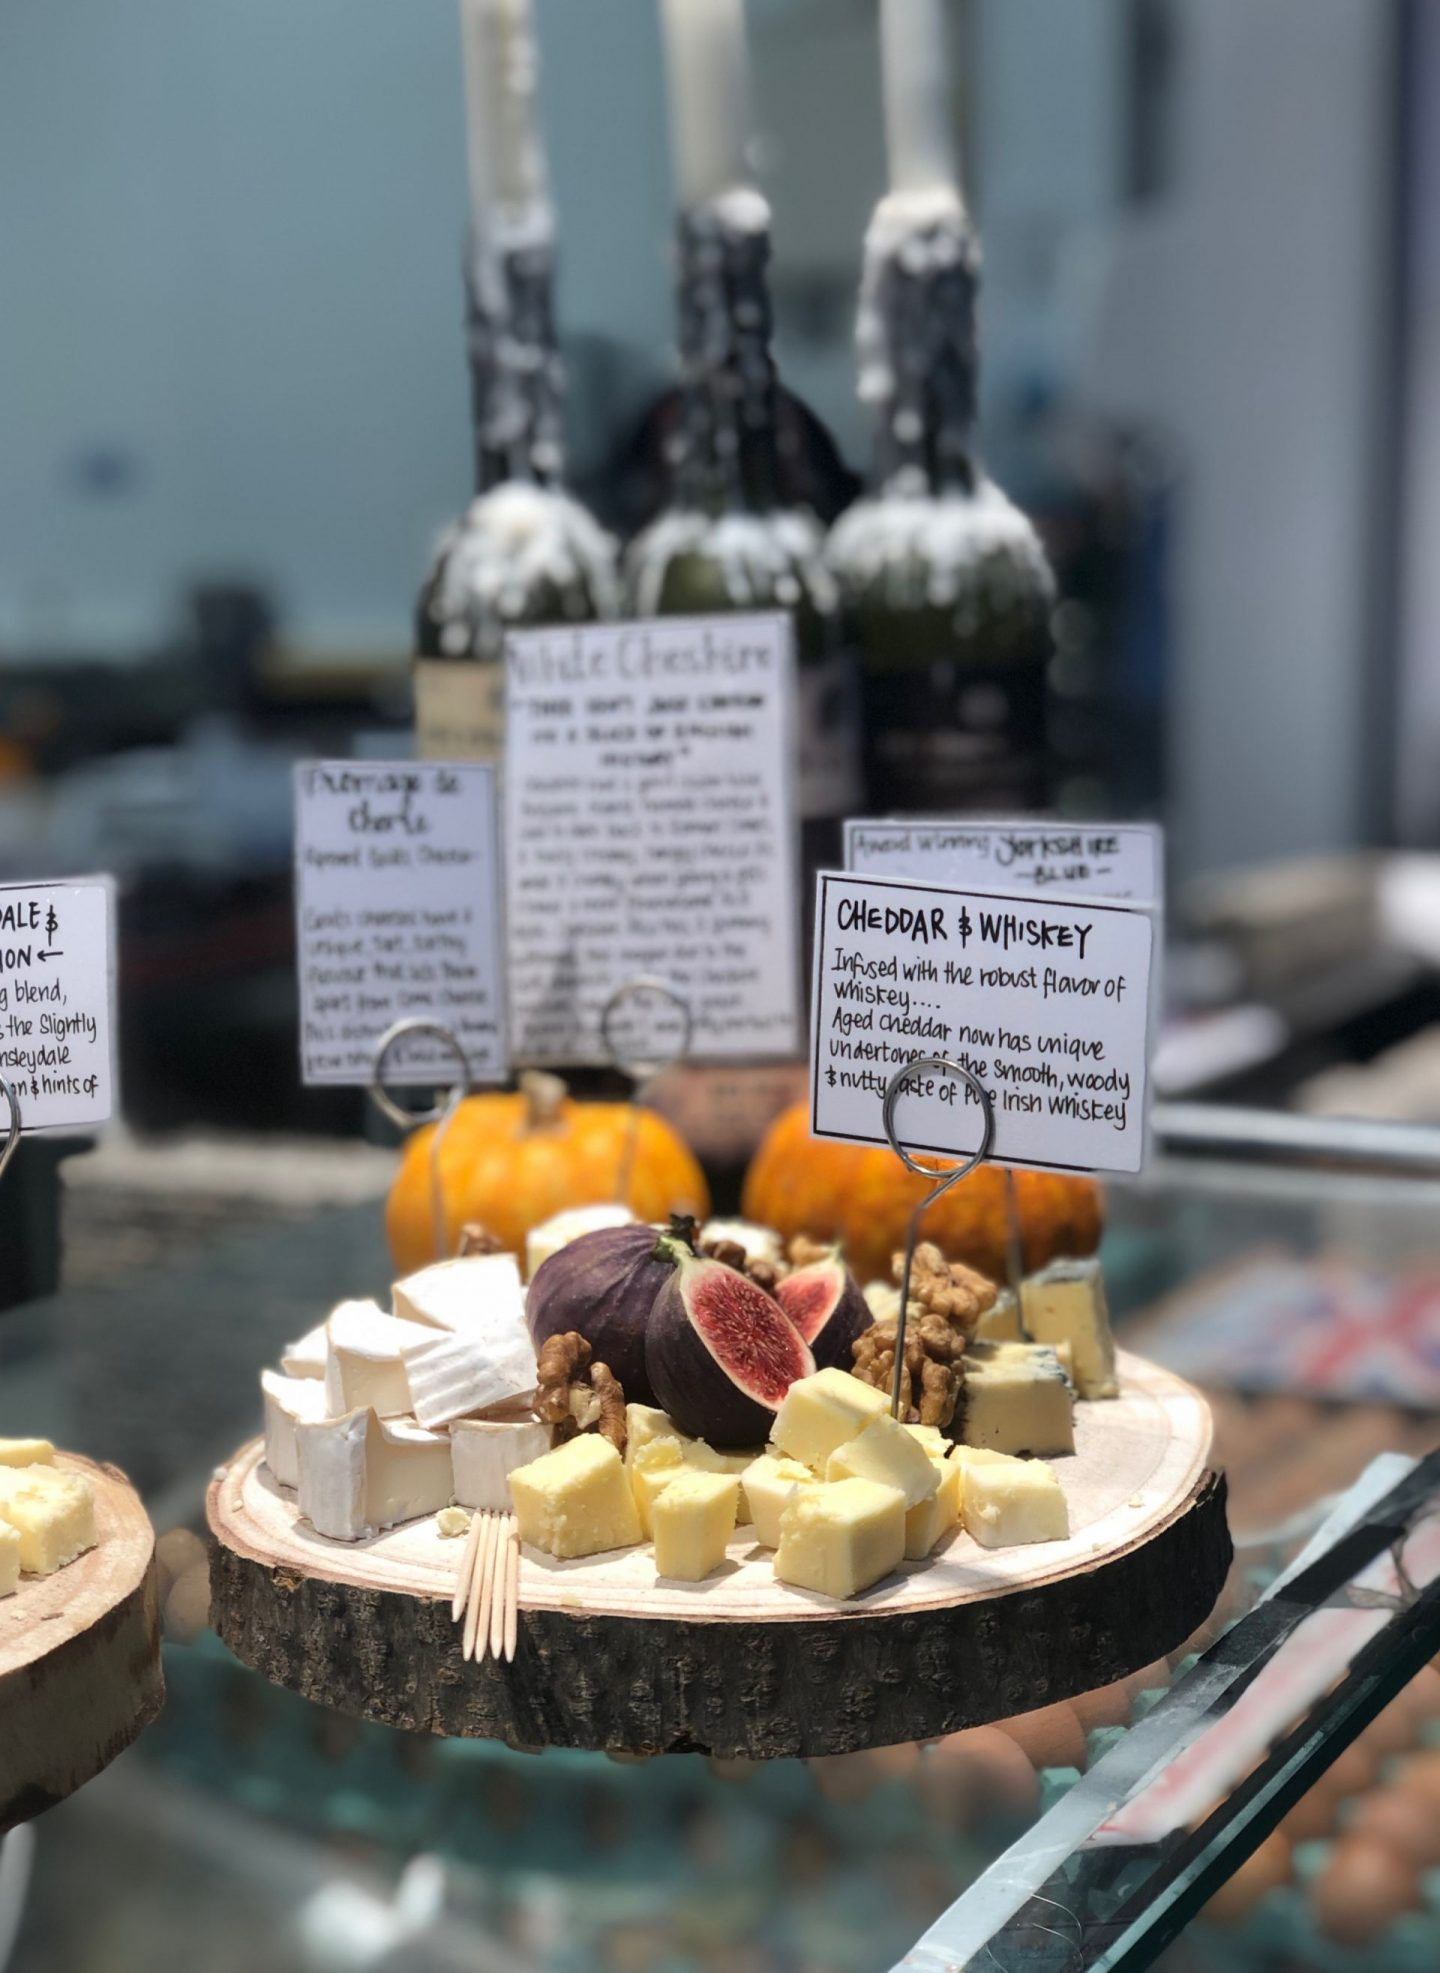 A selection of cheese samples on a wooden plate, with figs and walnuts in the centre. The cheeses have little signs in them showing what they are, with cheddar and whiskey in focus